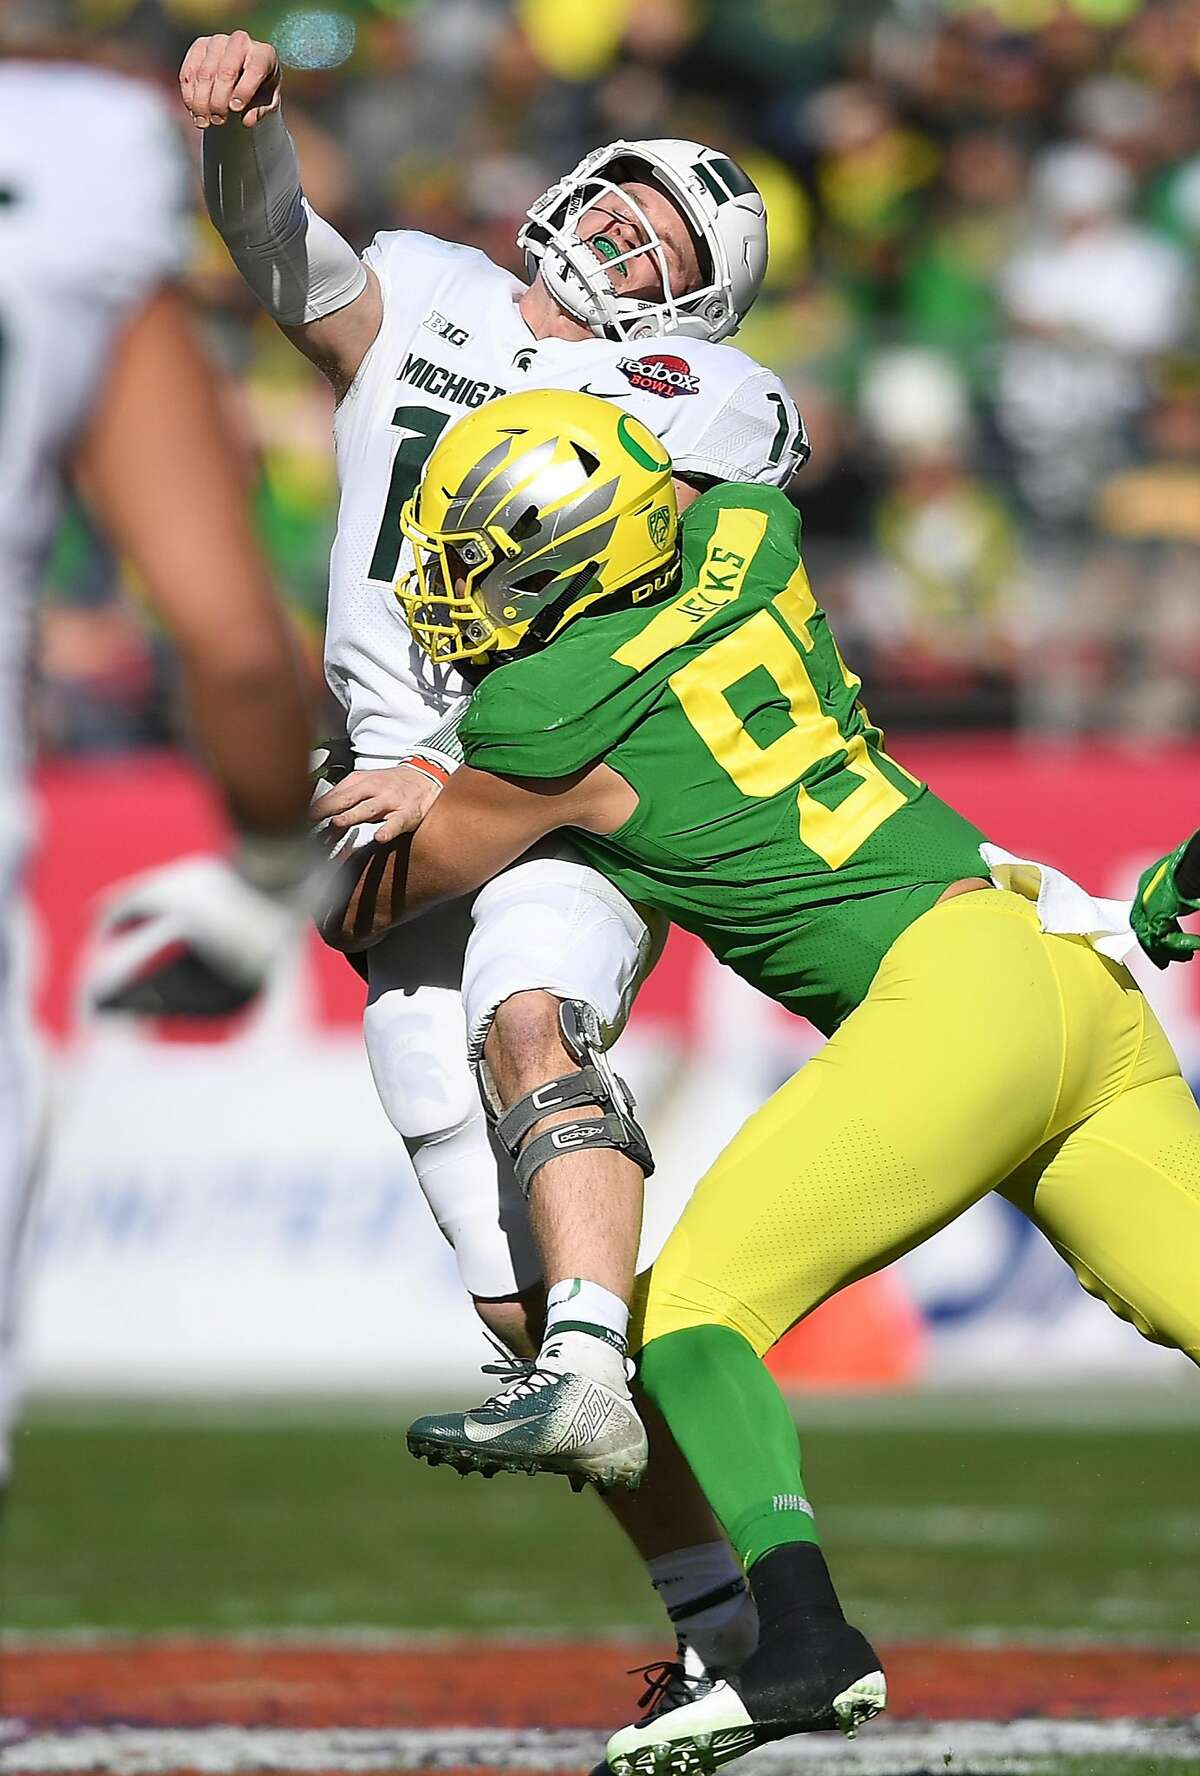 Round 4, No. 124 overall: DE Jalen Jelks, Oregon (6 feet 5 inches, 256 pounds) It's very hard to imagine the Seahawks not selecting a pass rusher in this defensive-line loaded class, even with the moves they've already made this offseason -- and the confidence Carroll has expressed in Jacob Martin. Oregon's Jalen Jelks is somewhat raw at this point -- he needs to add strength and mass to his frame -- but he has the talent to be a disrupting force in a couple year's time. Jelks had 57 tackles (including 7.5 for loss) and 3.5 sacks in 12 starts for the Ducks as a senior. He was a first-team All-Pac-12 selection in 2018.